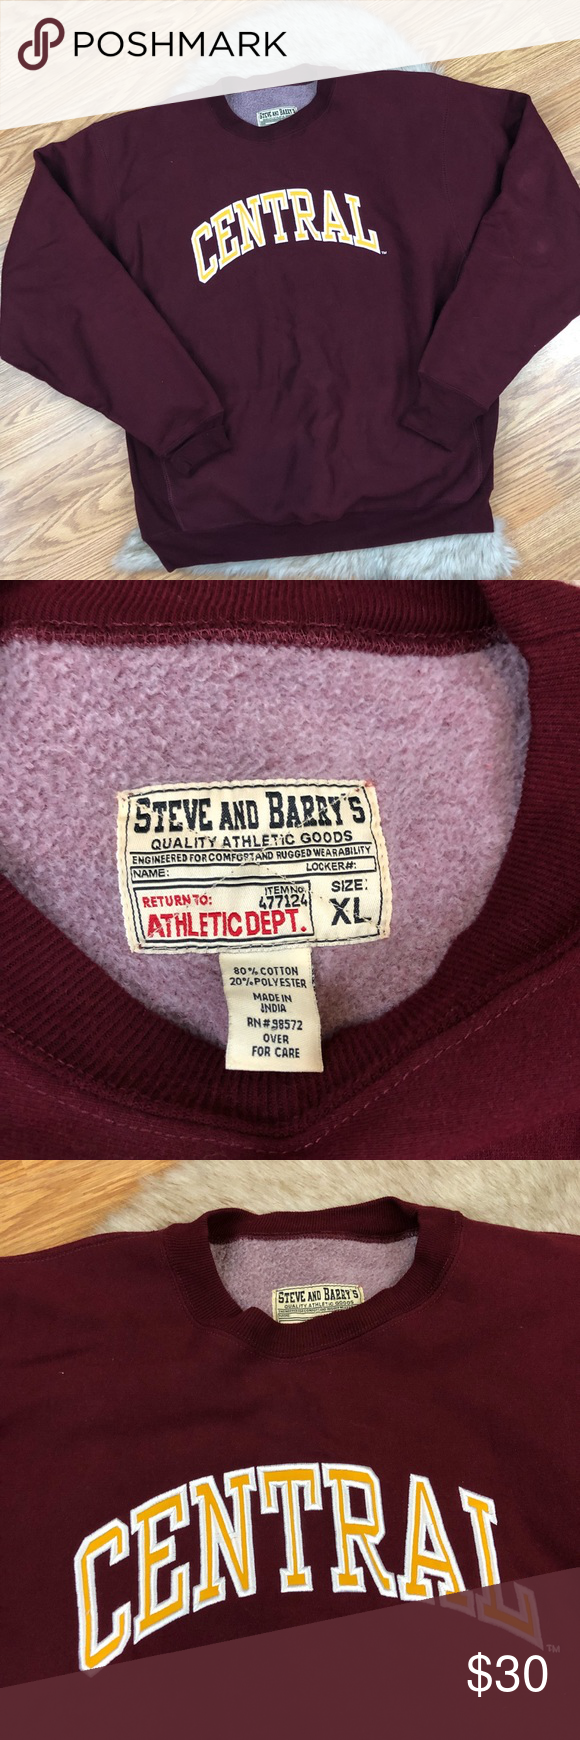 Steve And Barry S Central Michigan Sweater Size Xl Sweater Sizes Sweaters Steve [ 1740 x 580 Pixel ]